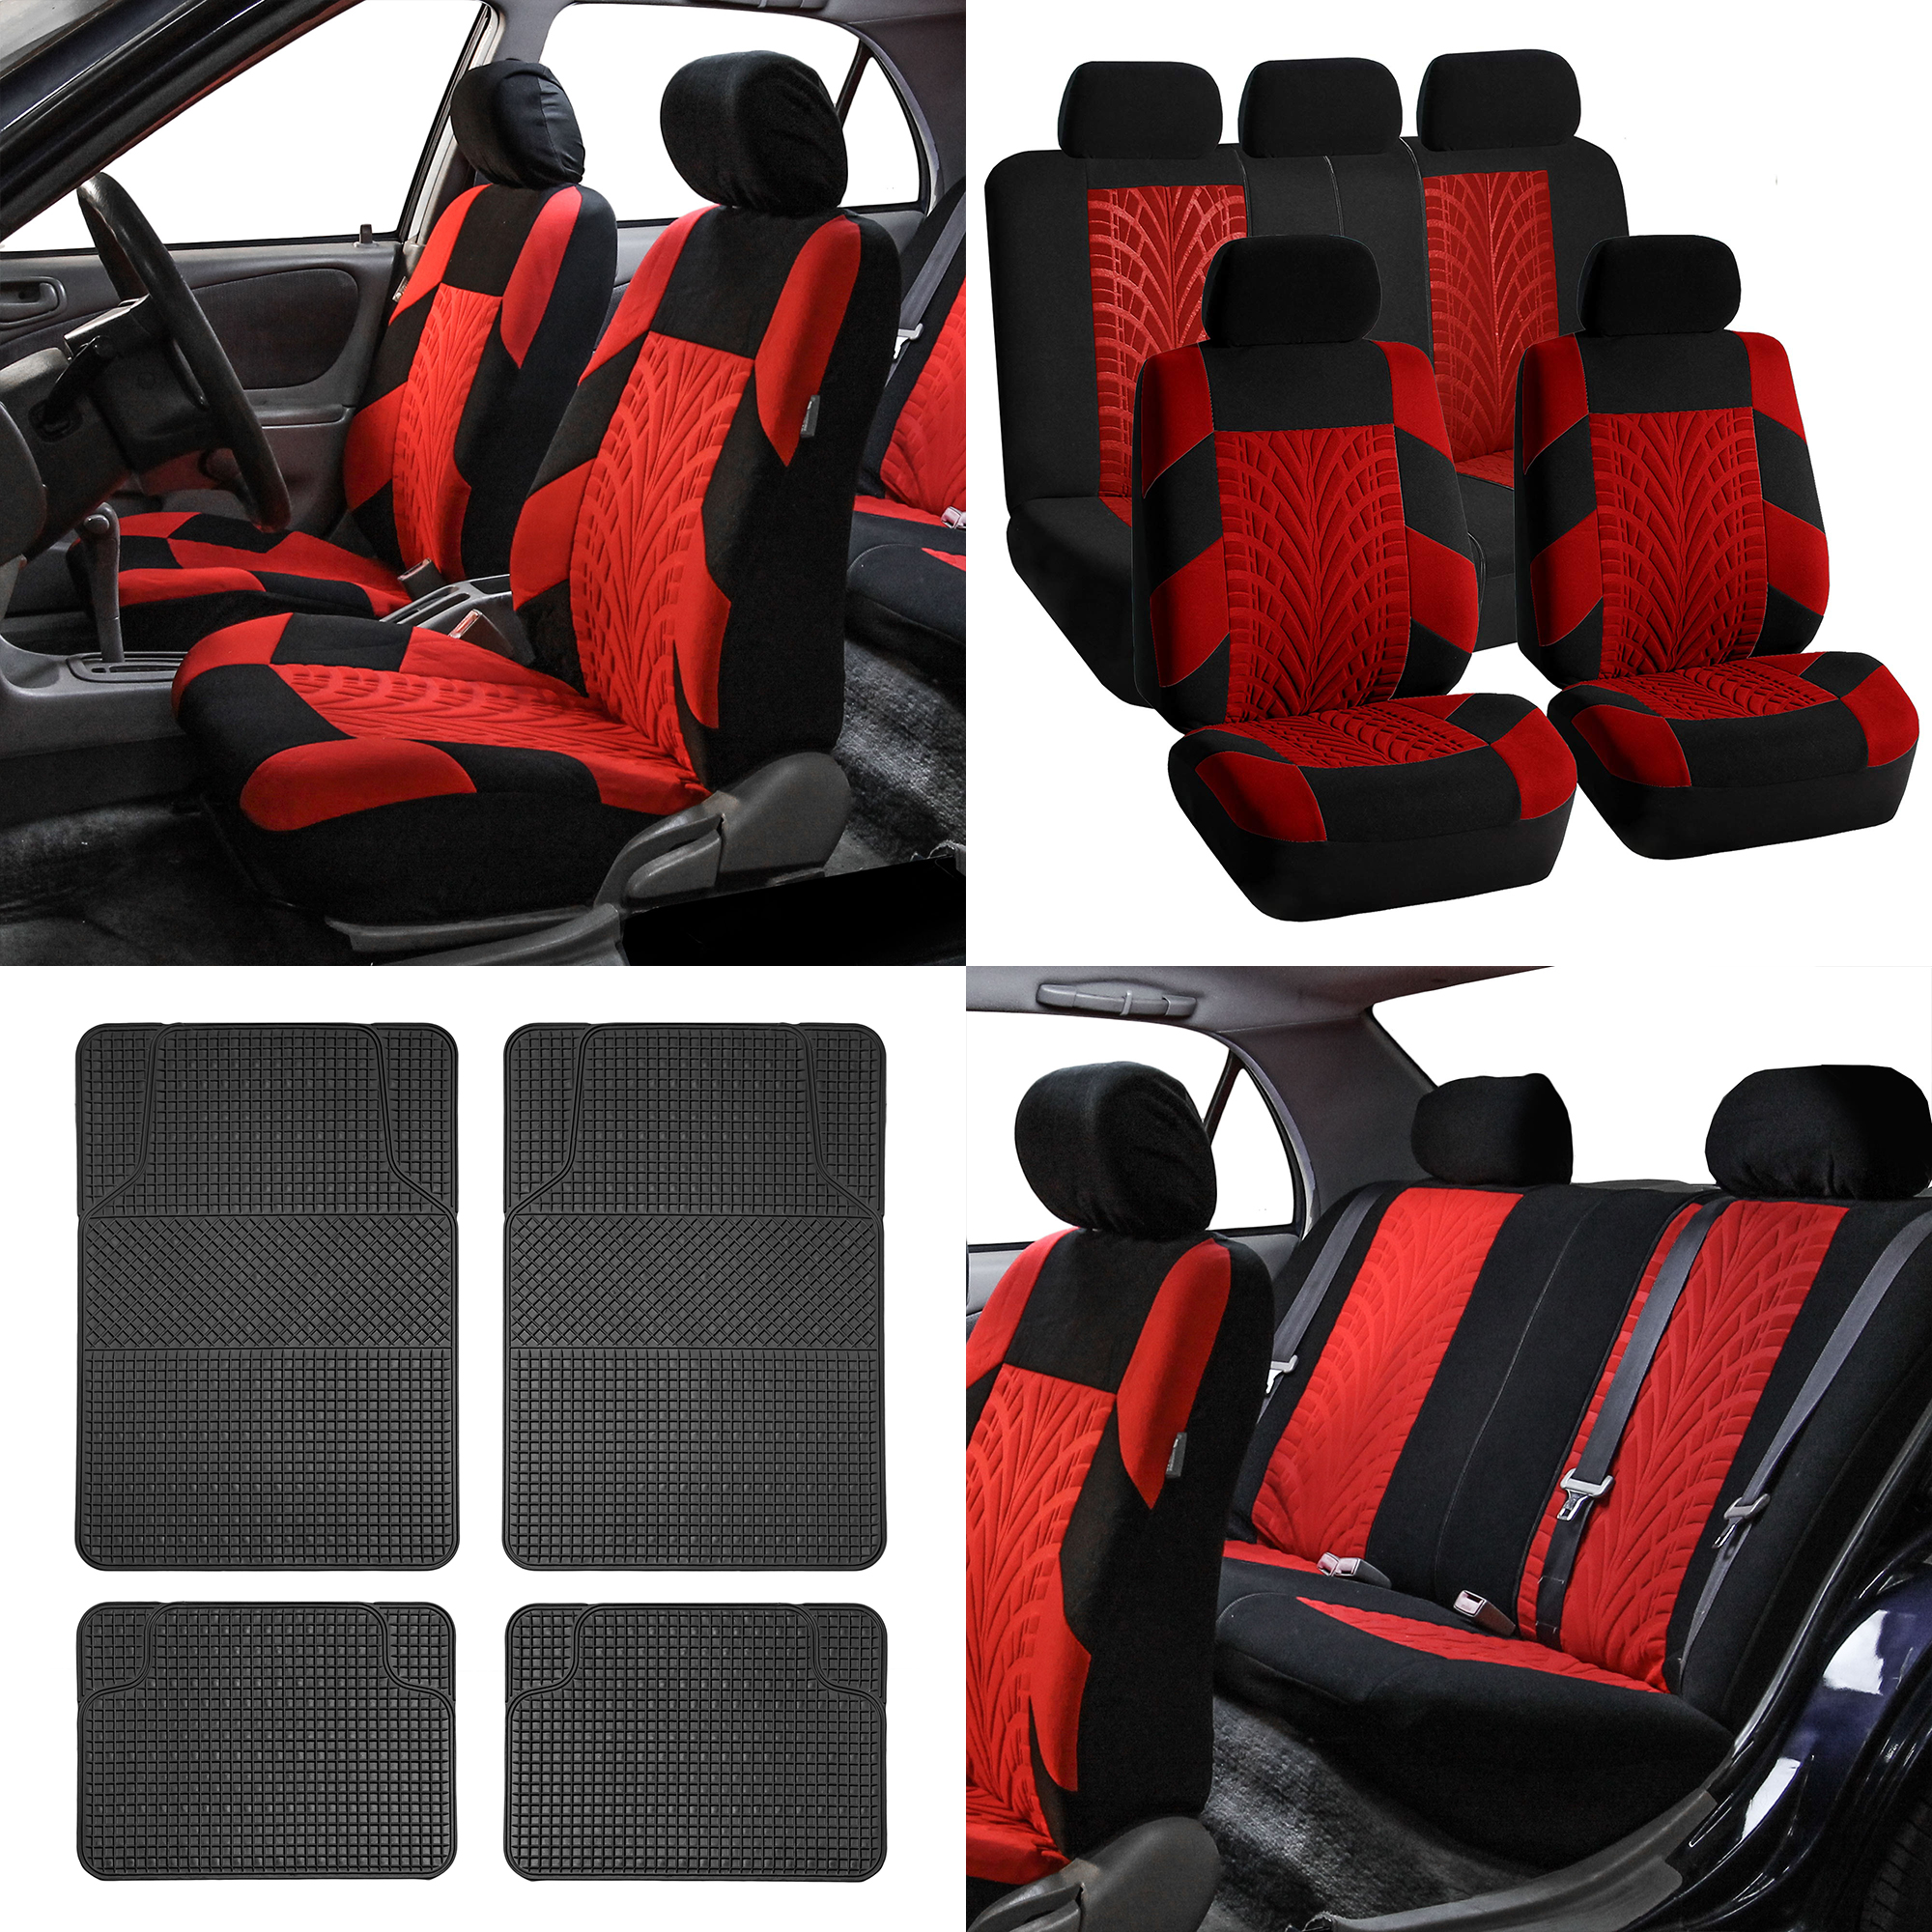 Fh Travel Master Car Seat Covers For Auto Full Auto Seat